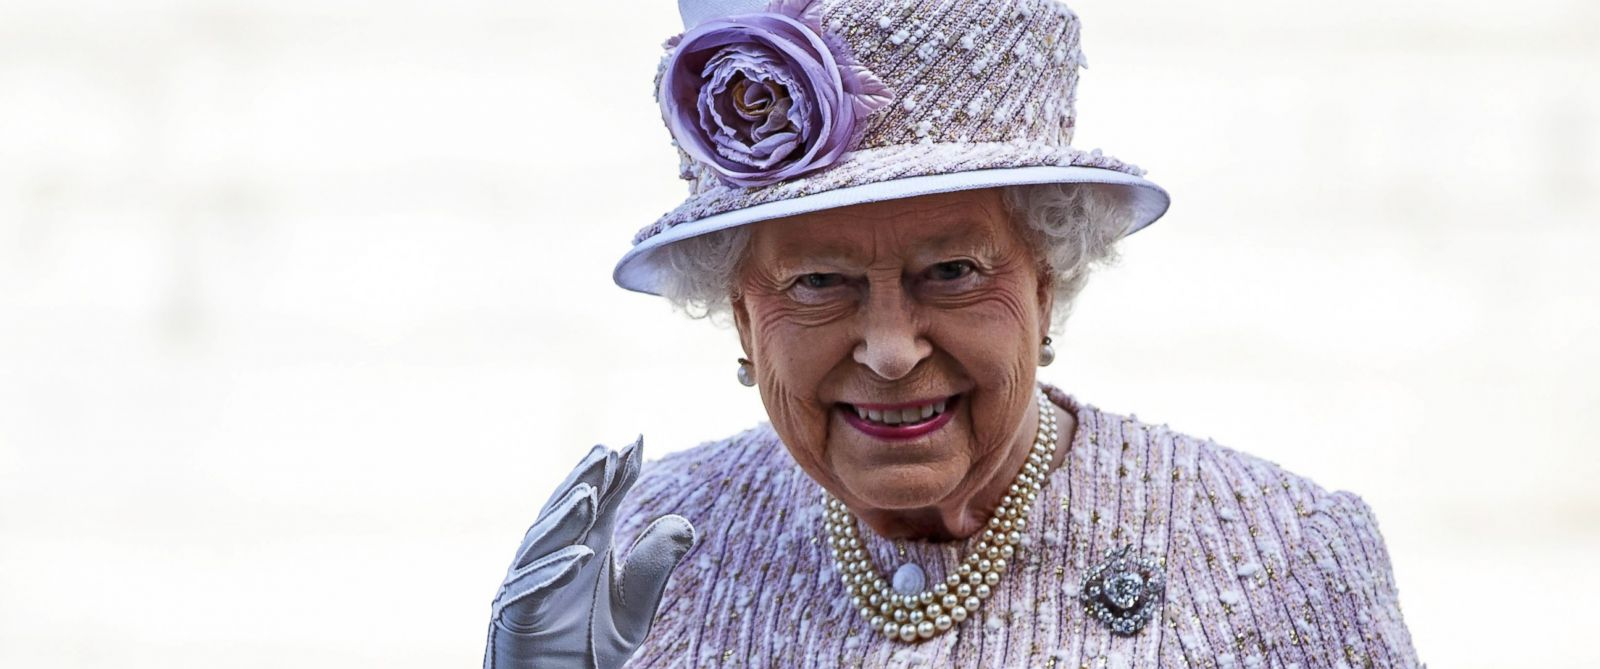 Queen Elizabeth II makes history